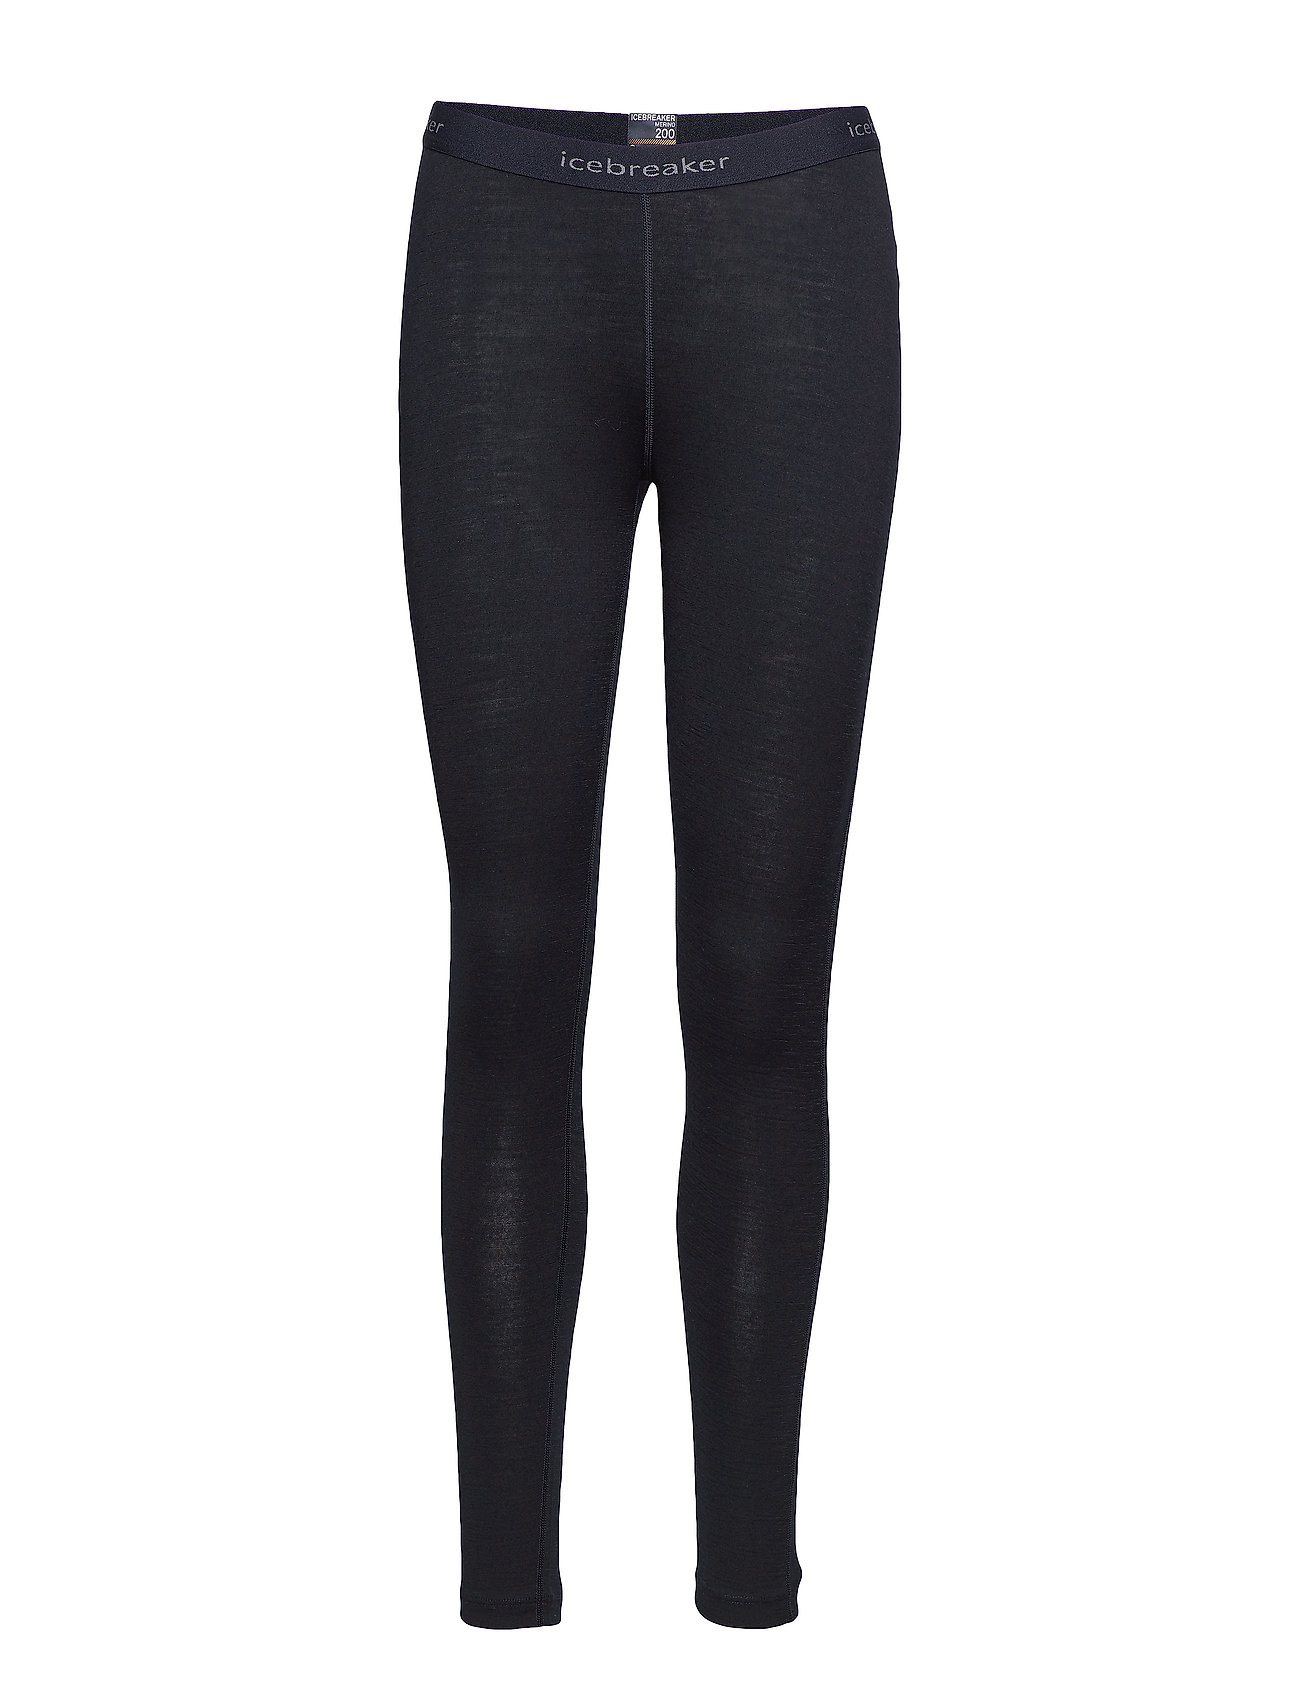 Icebreaker Wmns 200 Oasis Leggings - BLACK